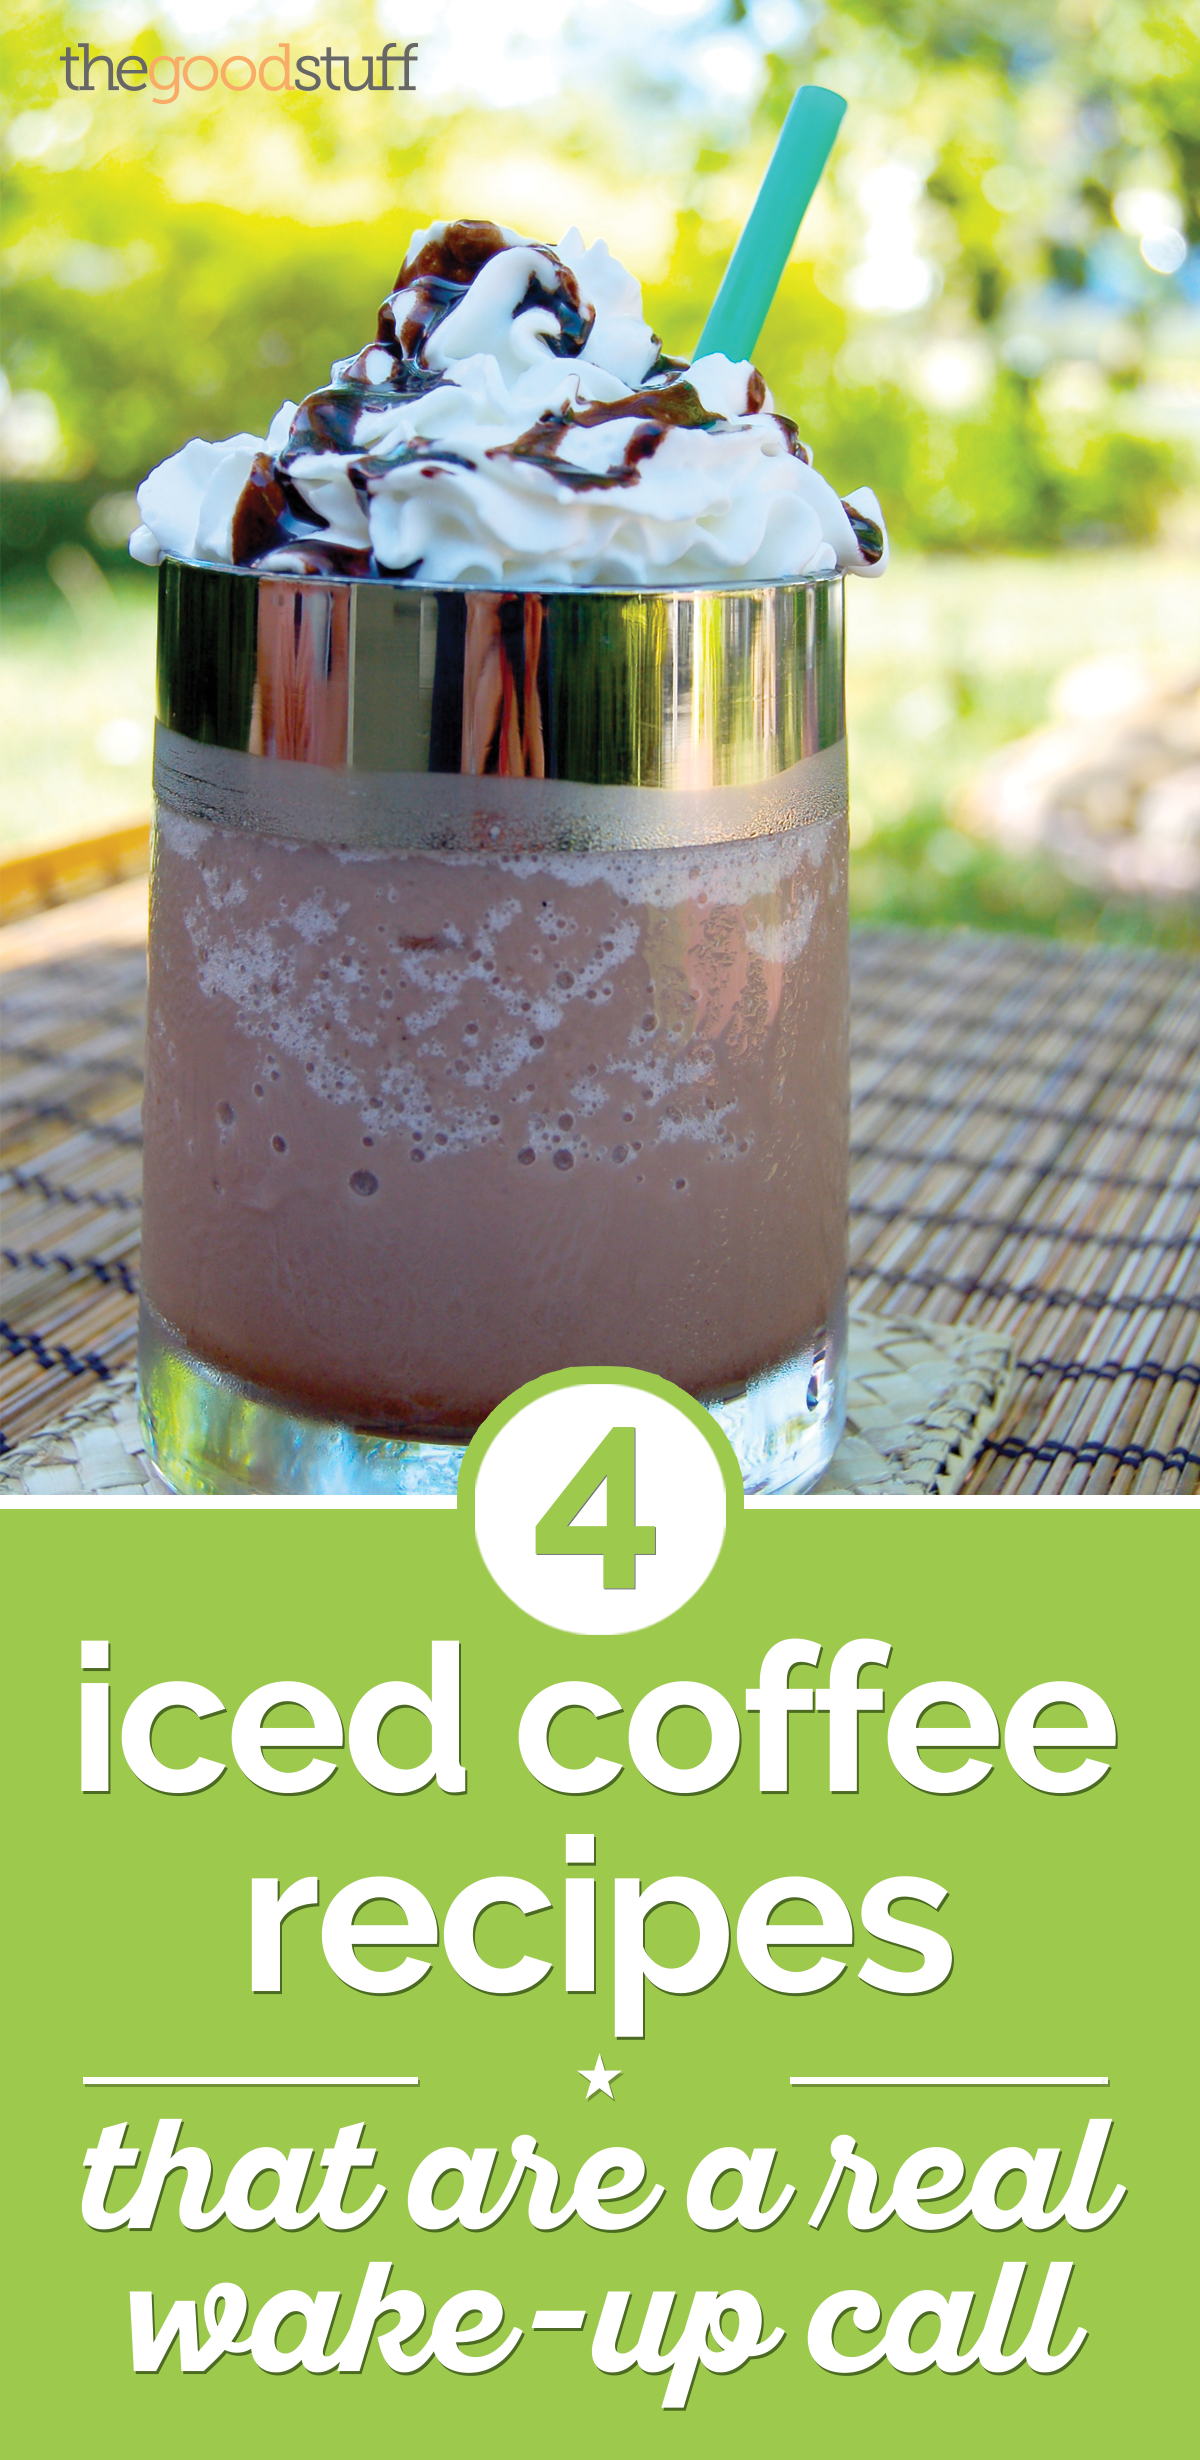 4 Iced Coffee Recipes That Are a Real Wake-Up Call | thegoodstuff